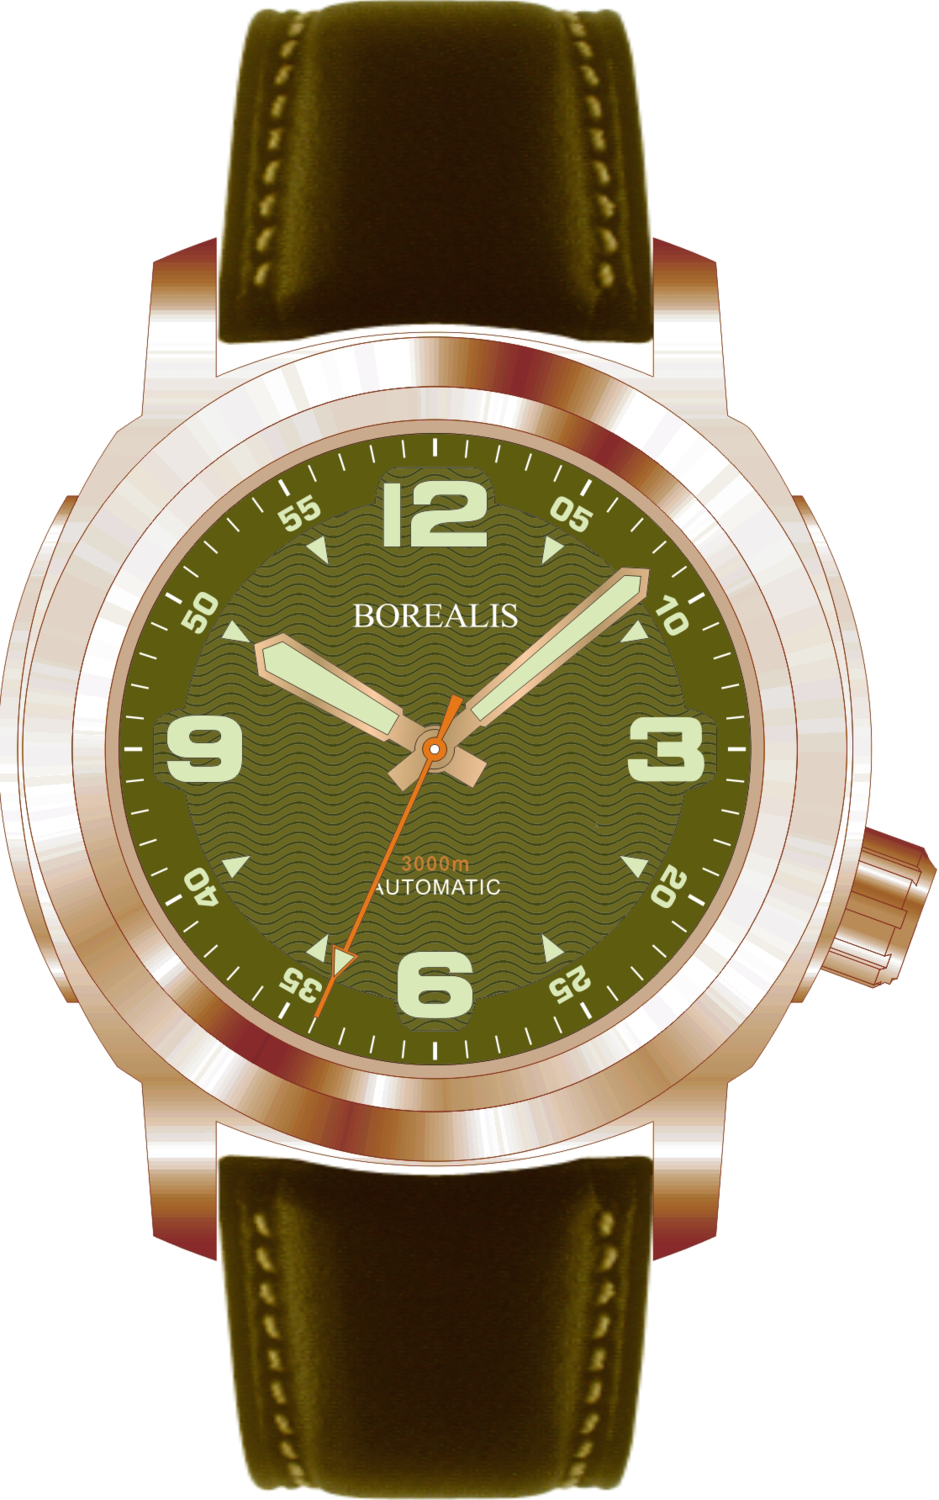 Borealis Batial Bronze CuSn8 Green 3000m Miyota 9015 Automatic Diver Watch No Date Display